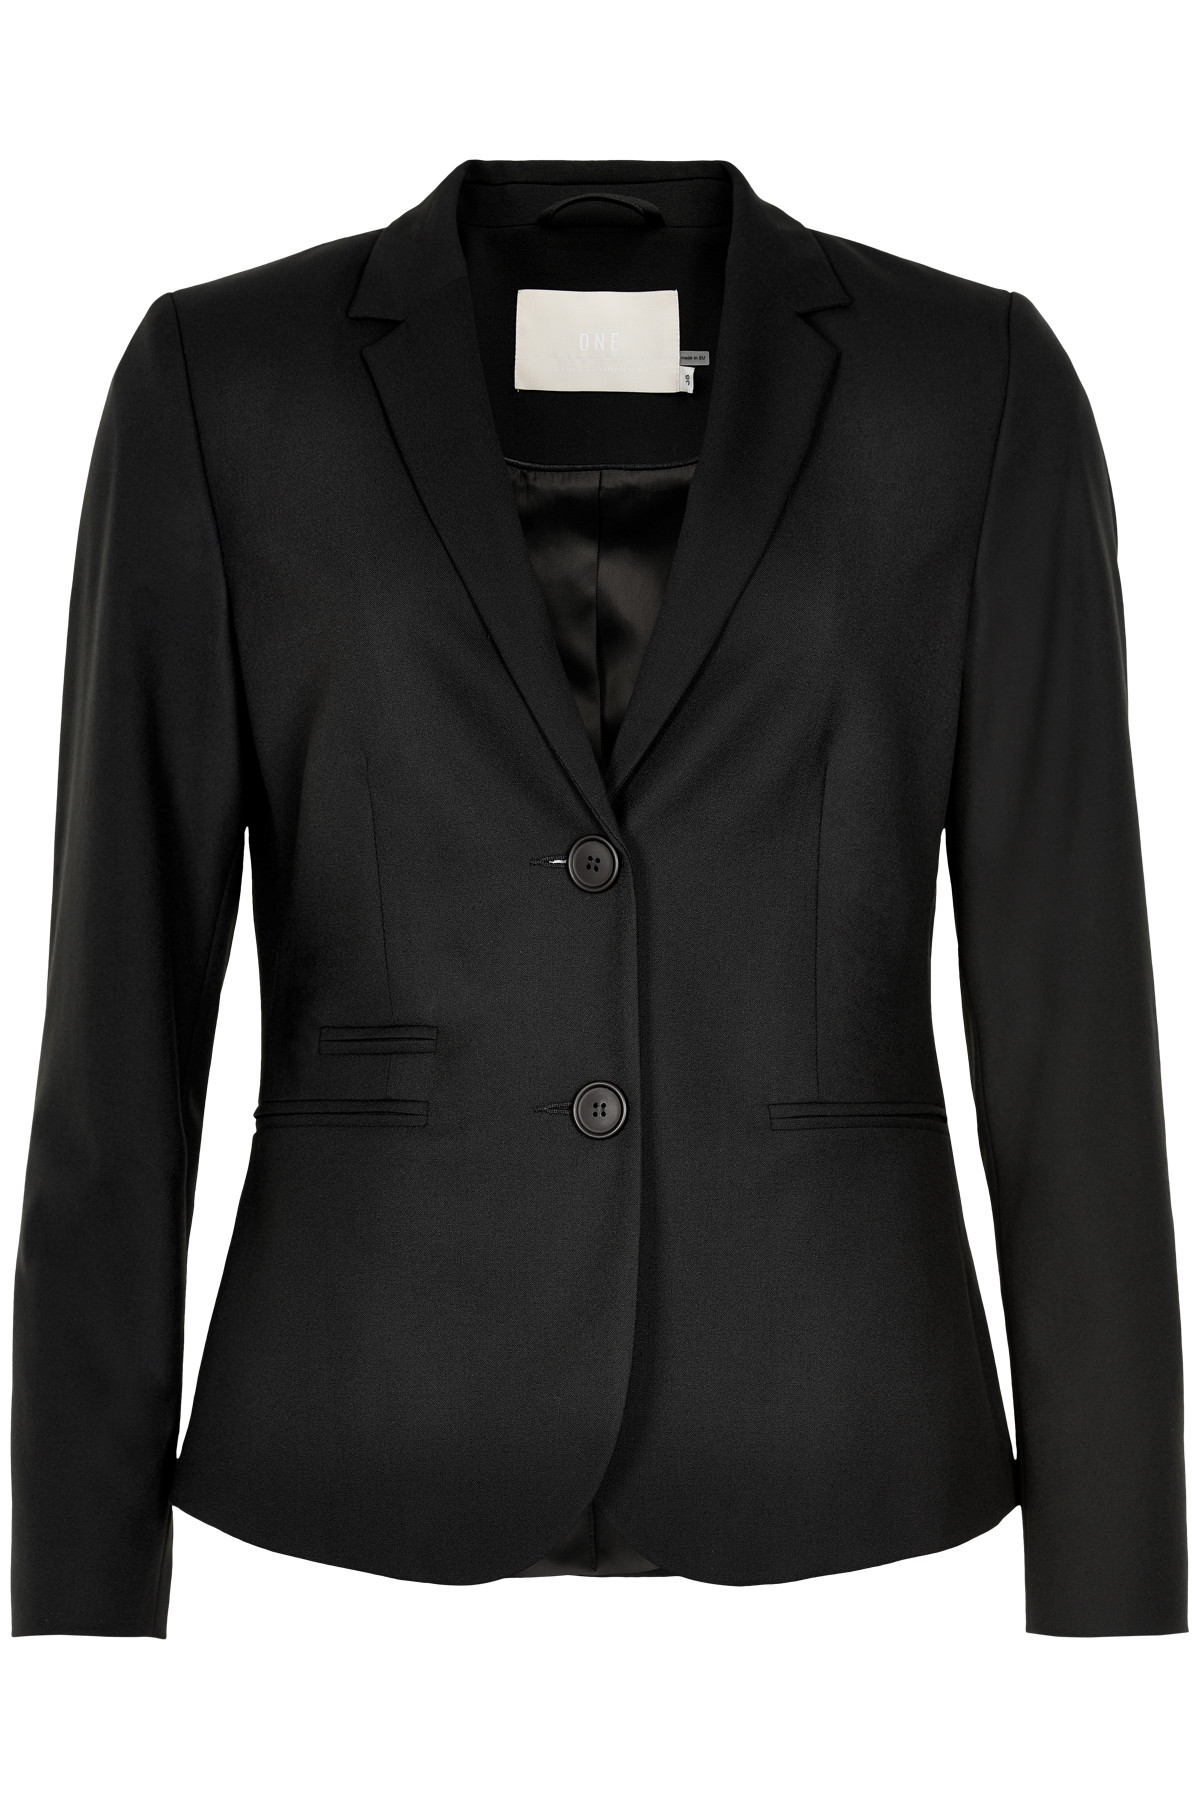 Image of   KAREN BY SIMONSEN SYDNEY BLAZER 10102089 (Black 40999, 40)